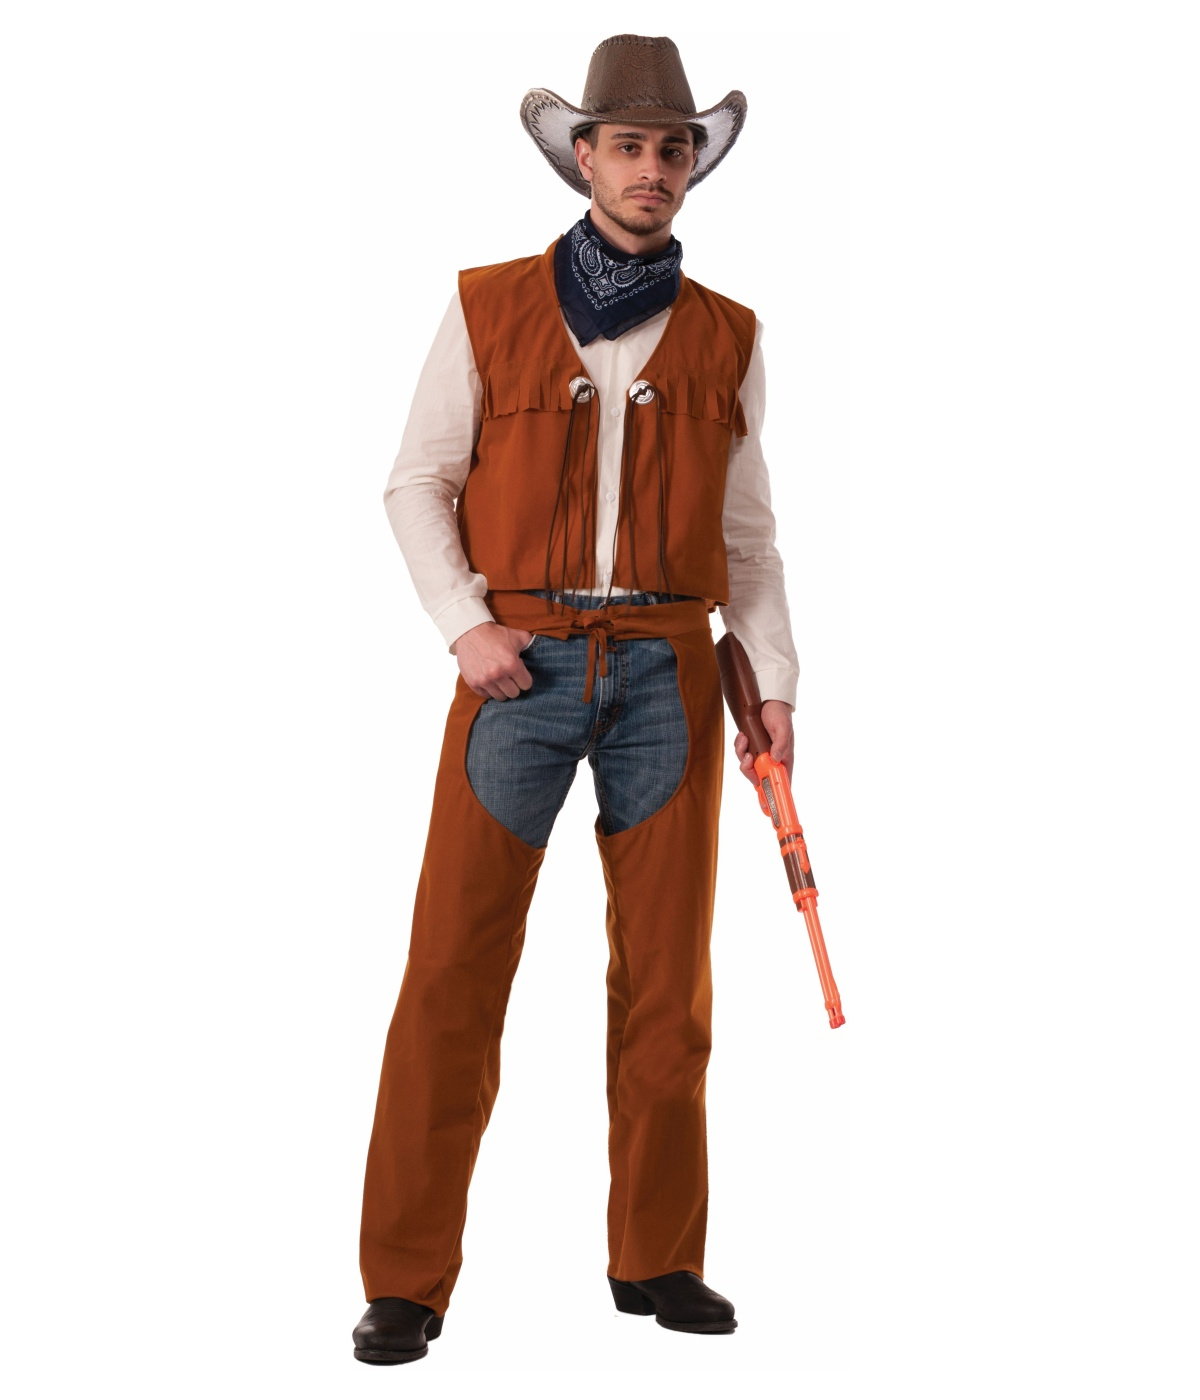 Best in the West Mens Cowboy Costume - Cowboy Costume